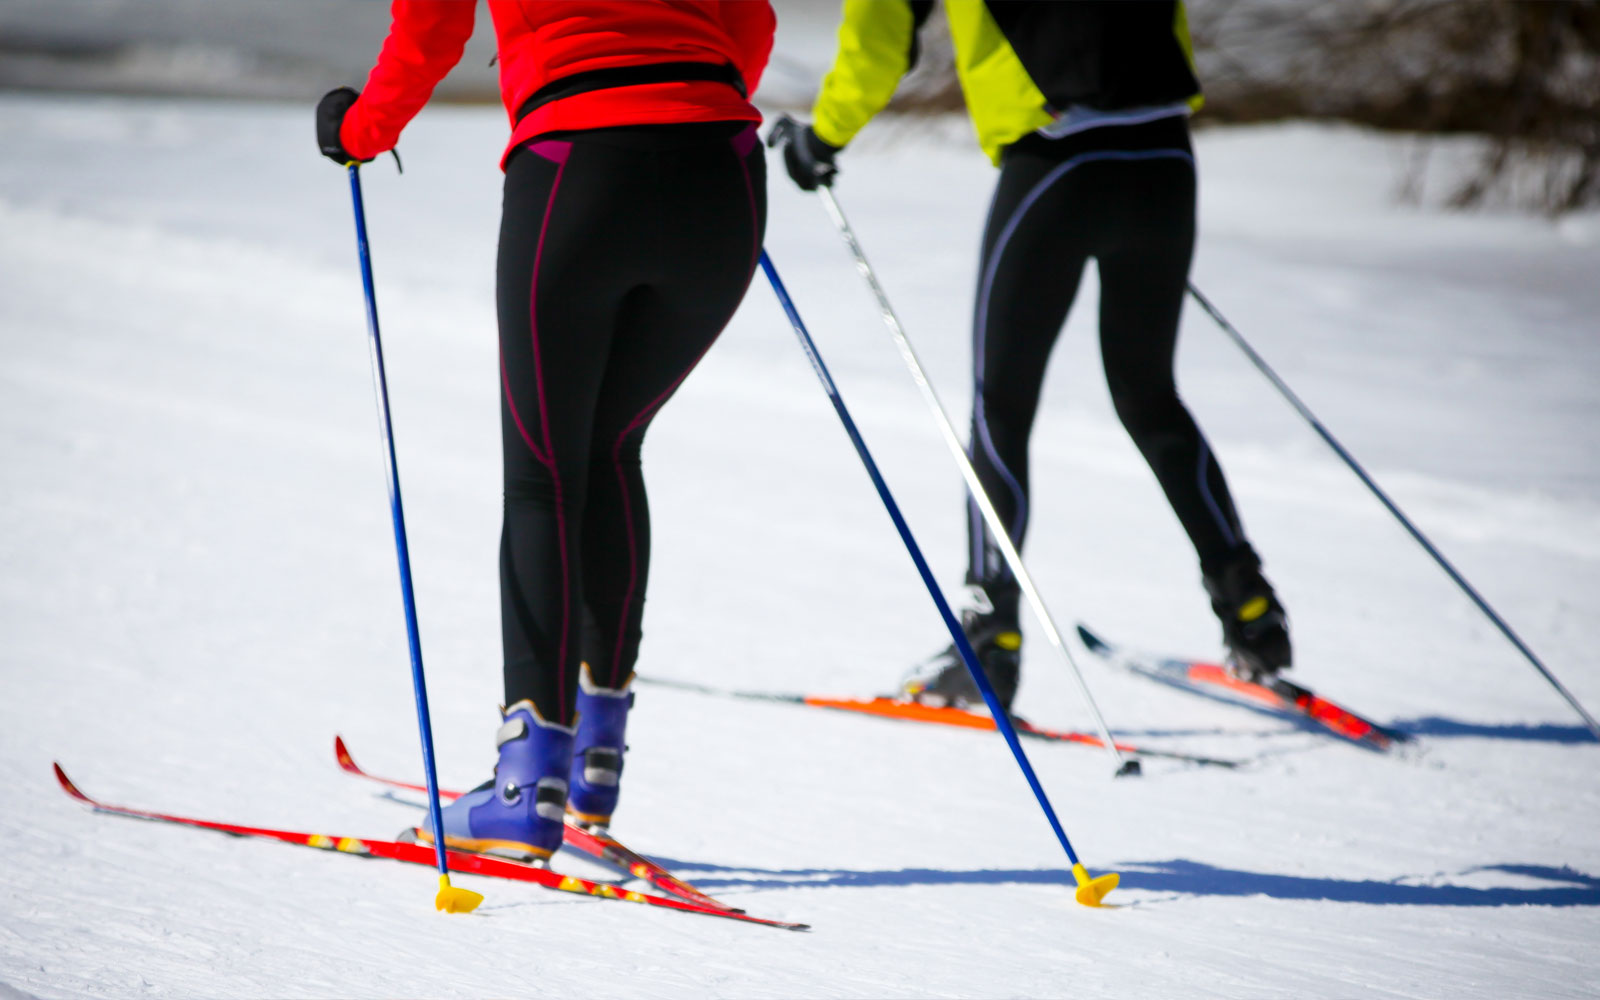 Cross Country Skis Nordic Skis The House Com >> Telluride Nordic Center Cross Country Skiing Skating And Snowshoeing